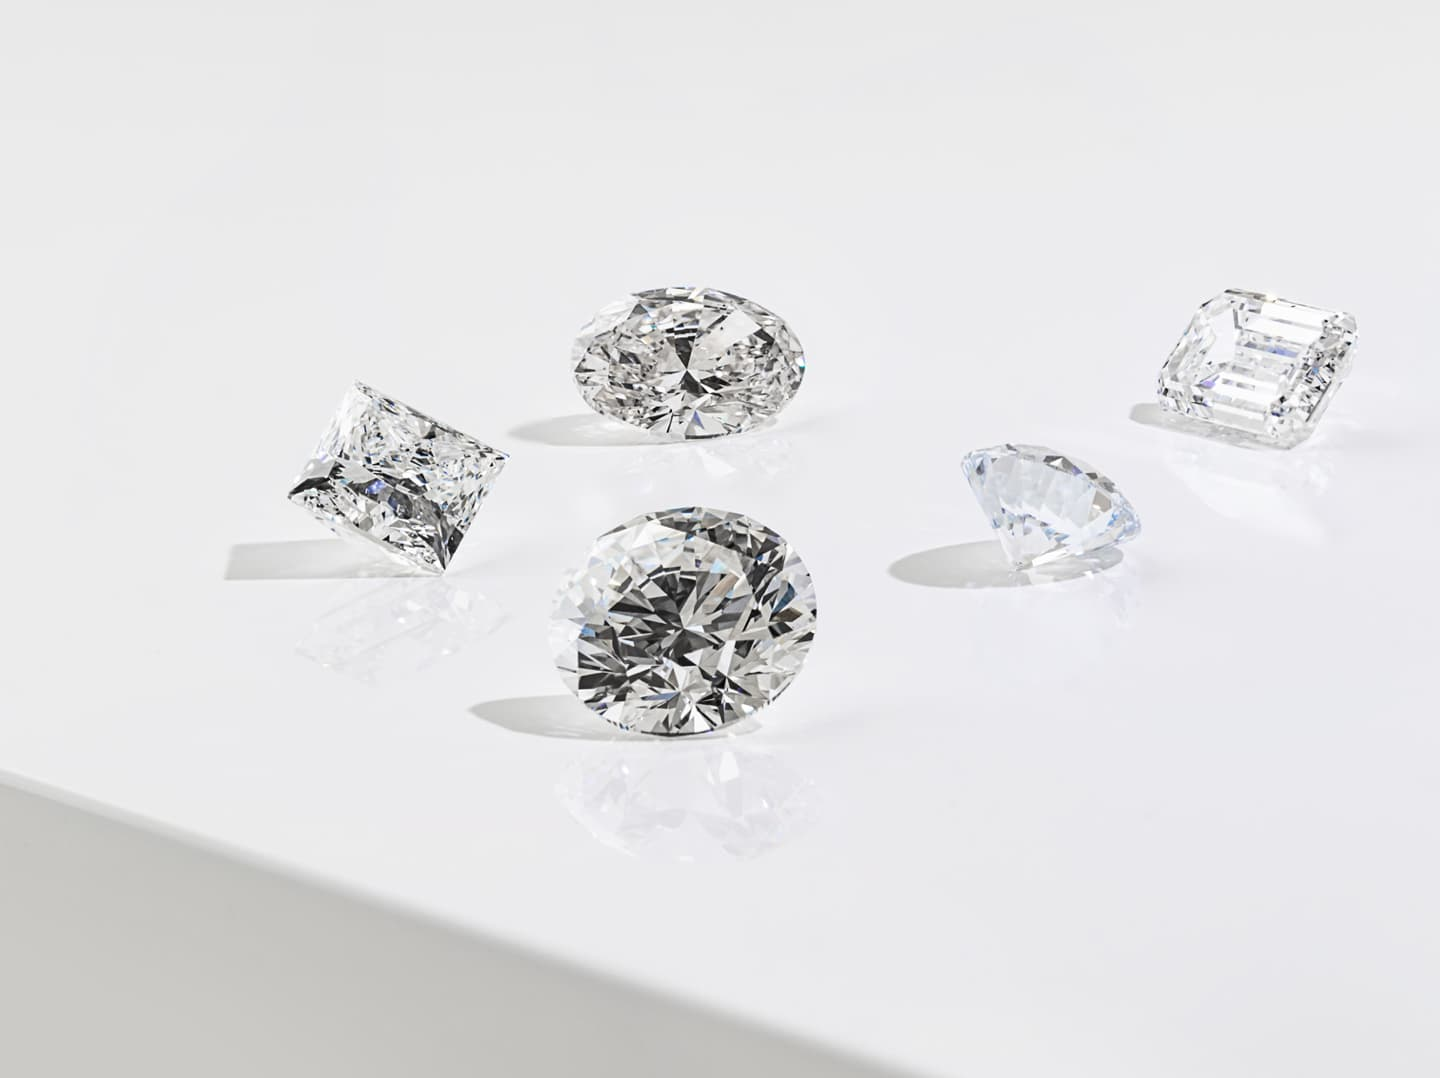 How much are lab grown diamonds